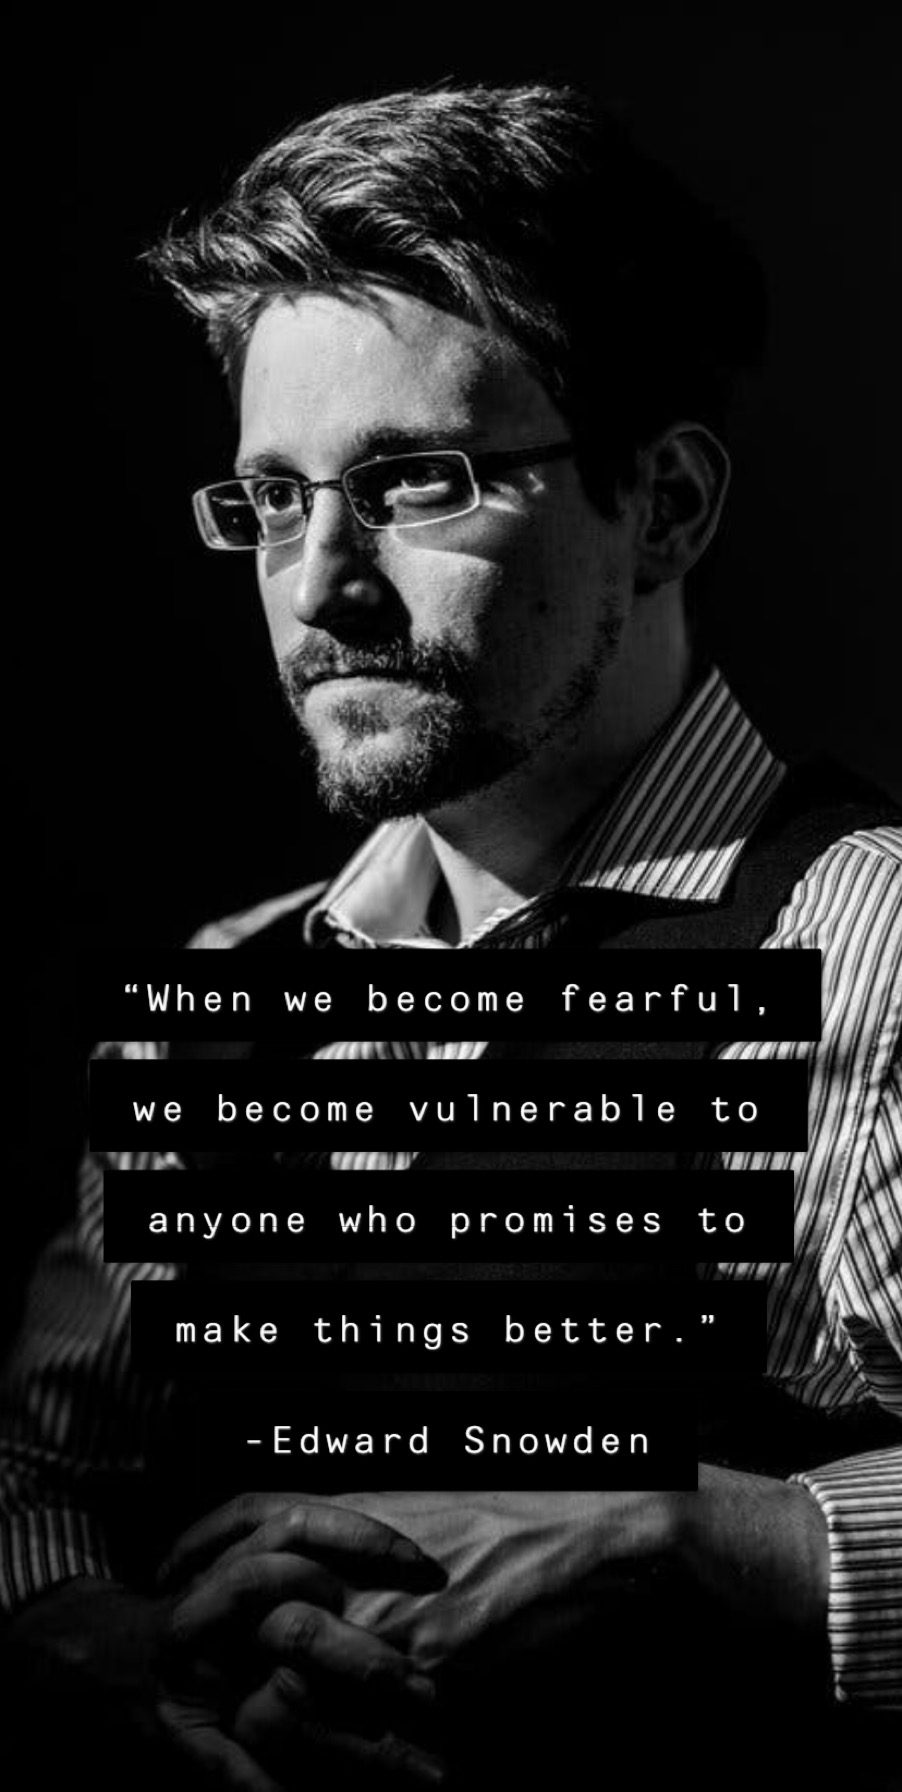 """When we become fearful, we become vulnerable to anyone who promises to make things better."" -Edward Snowden (2019) [902×1792]"